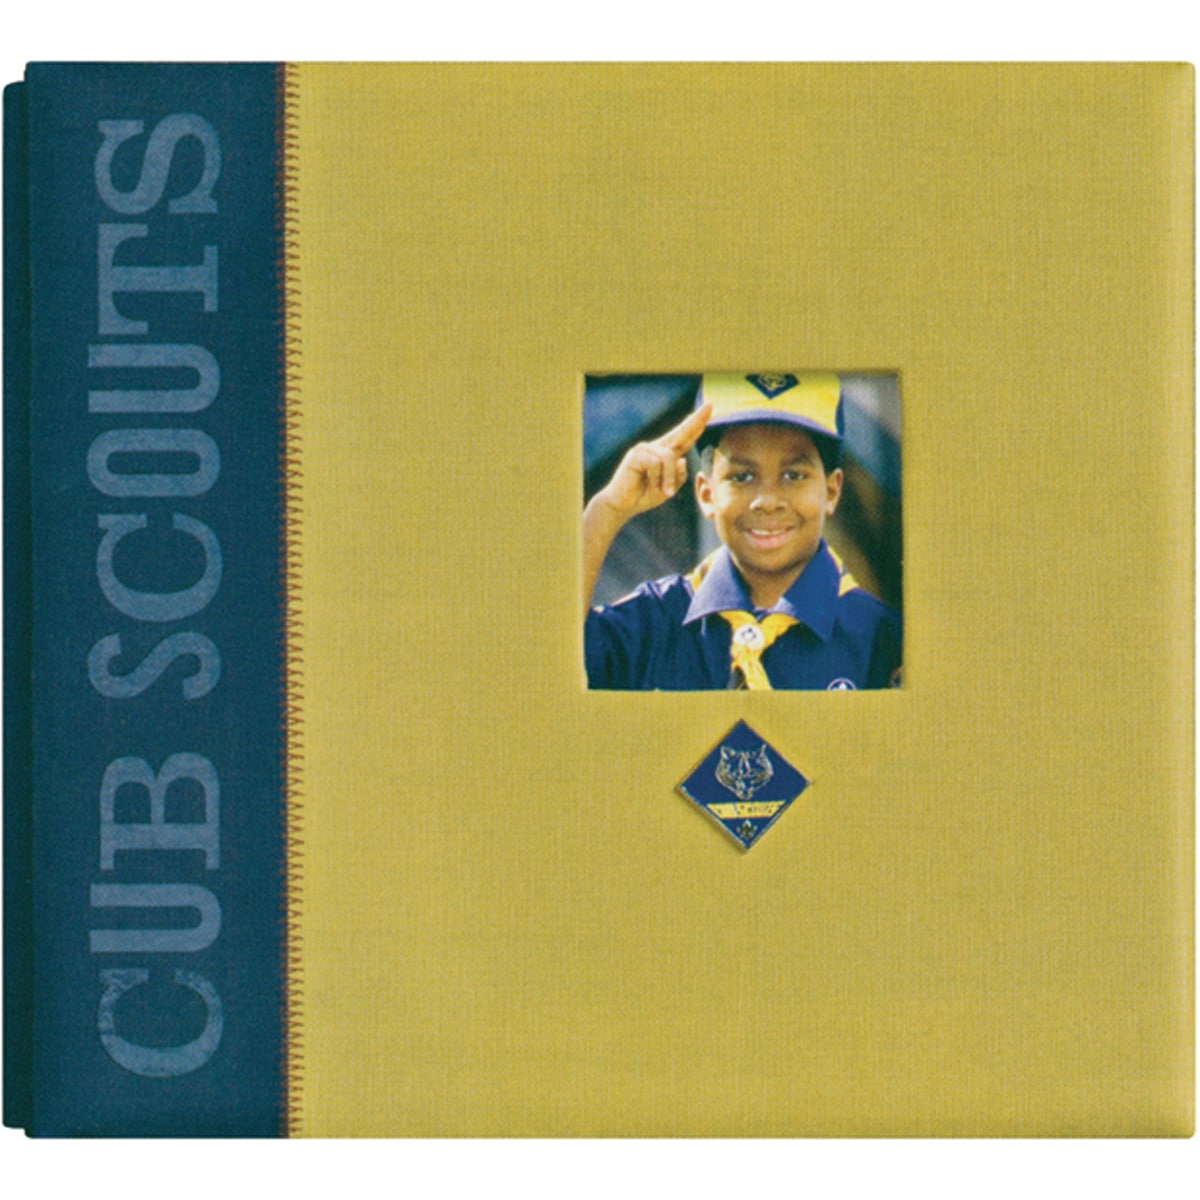 Classic Post-bound Cub Scouts Twill Scrapbook Album with Metal Emblem